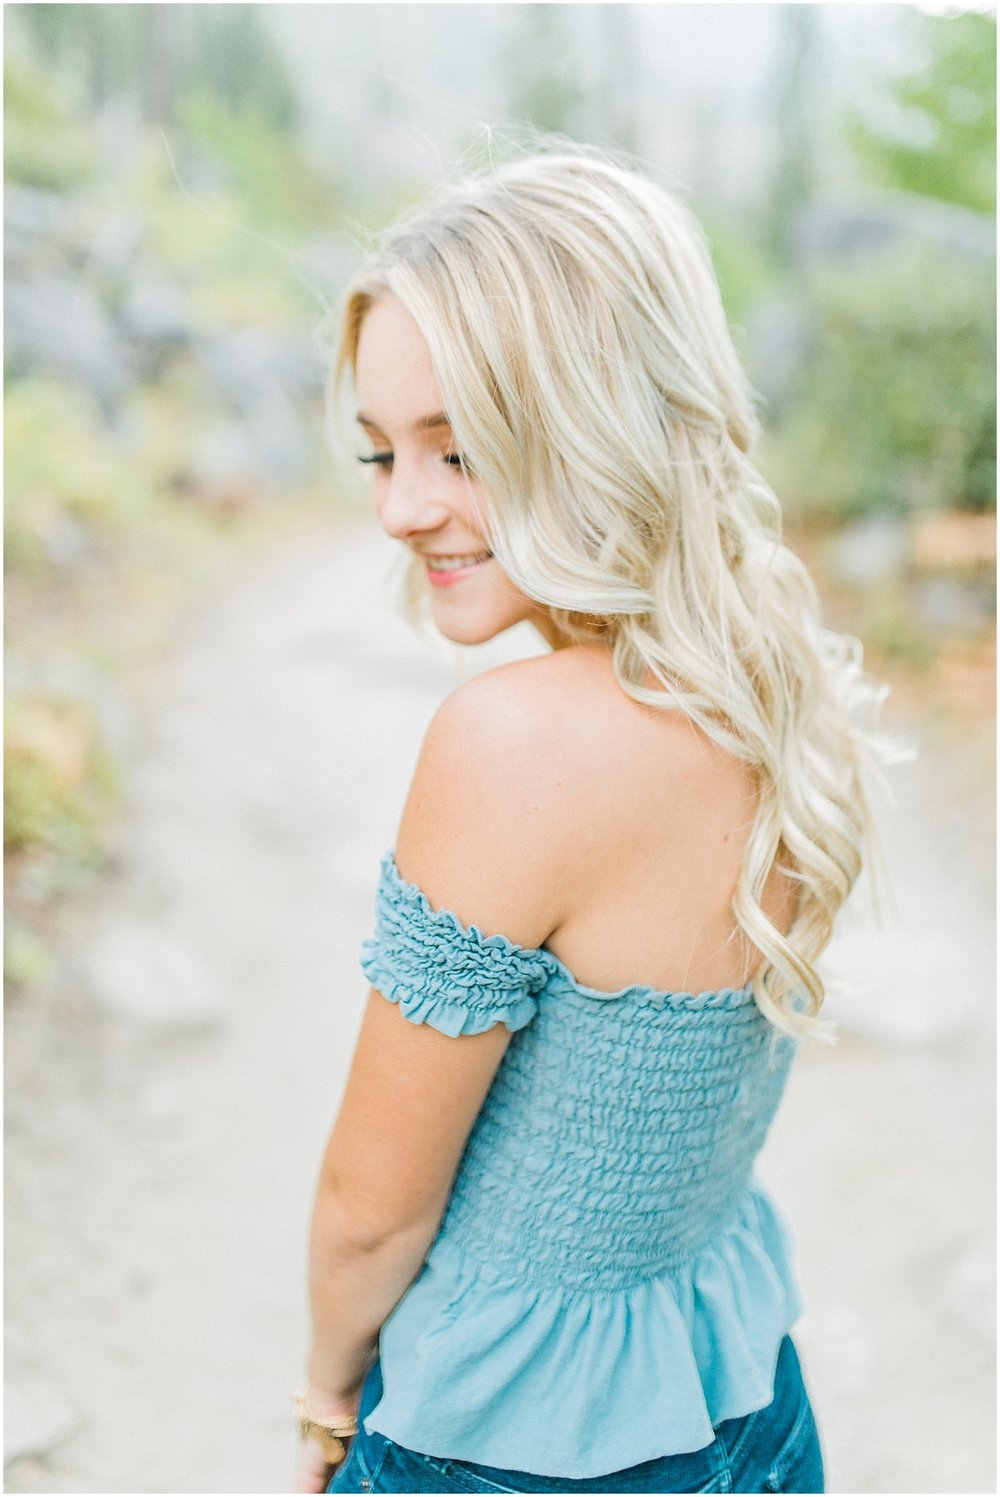 Emma Rose Company | Pacific Northwest Senior Portrait Photographer | Light and Airy Styled Senior Portraits | What to Wear to Senior Pictures | Kindred Presets | Seattle, Wenatchee and Portland Wedding and Portrait Photographer | Emma Rose32.jpg